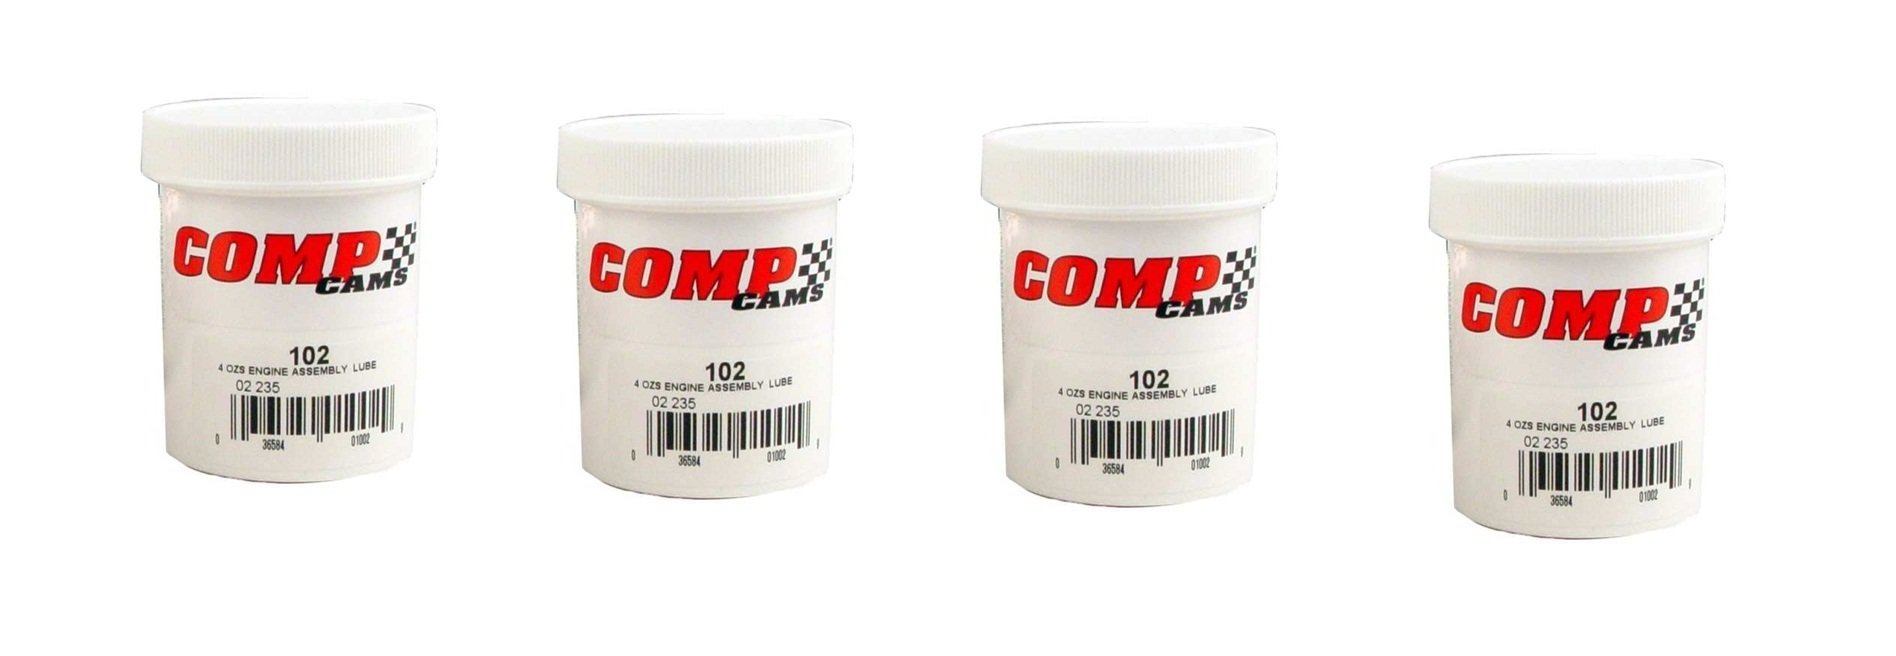 Competition Cams 102 Engine Assembly Lube, 4 oz. Jar (4)